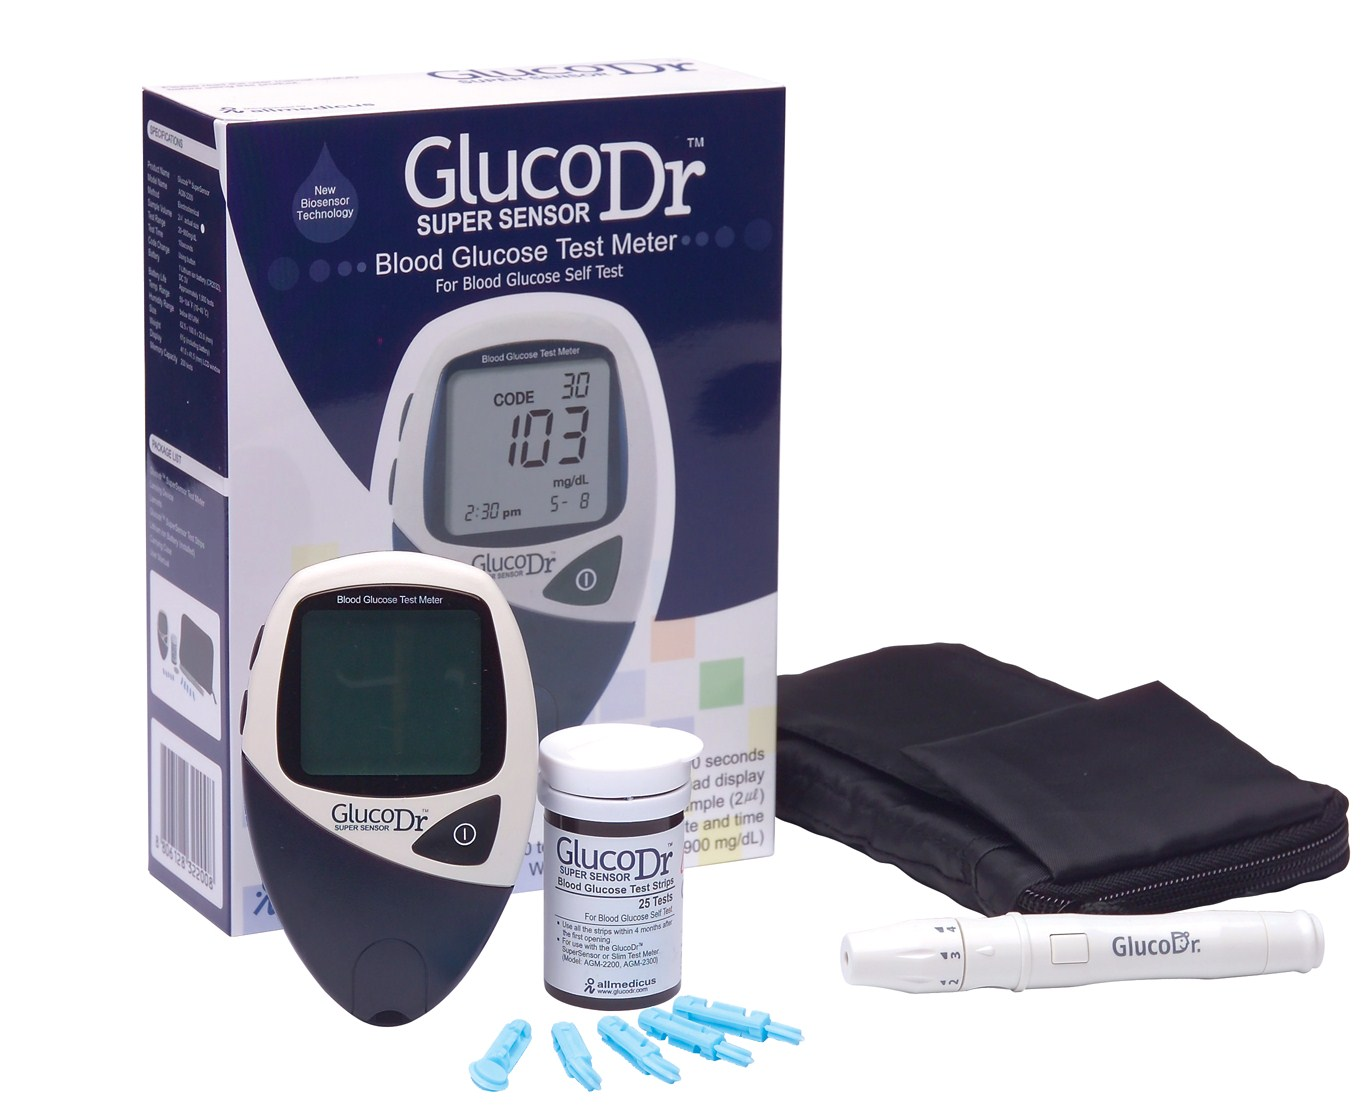 Gluco Dr. Super sensor (AGM-2200) Blood Glucose Monitoring System